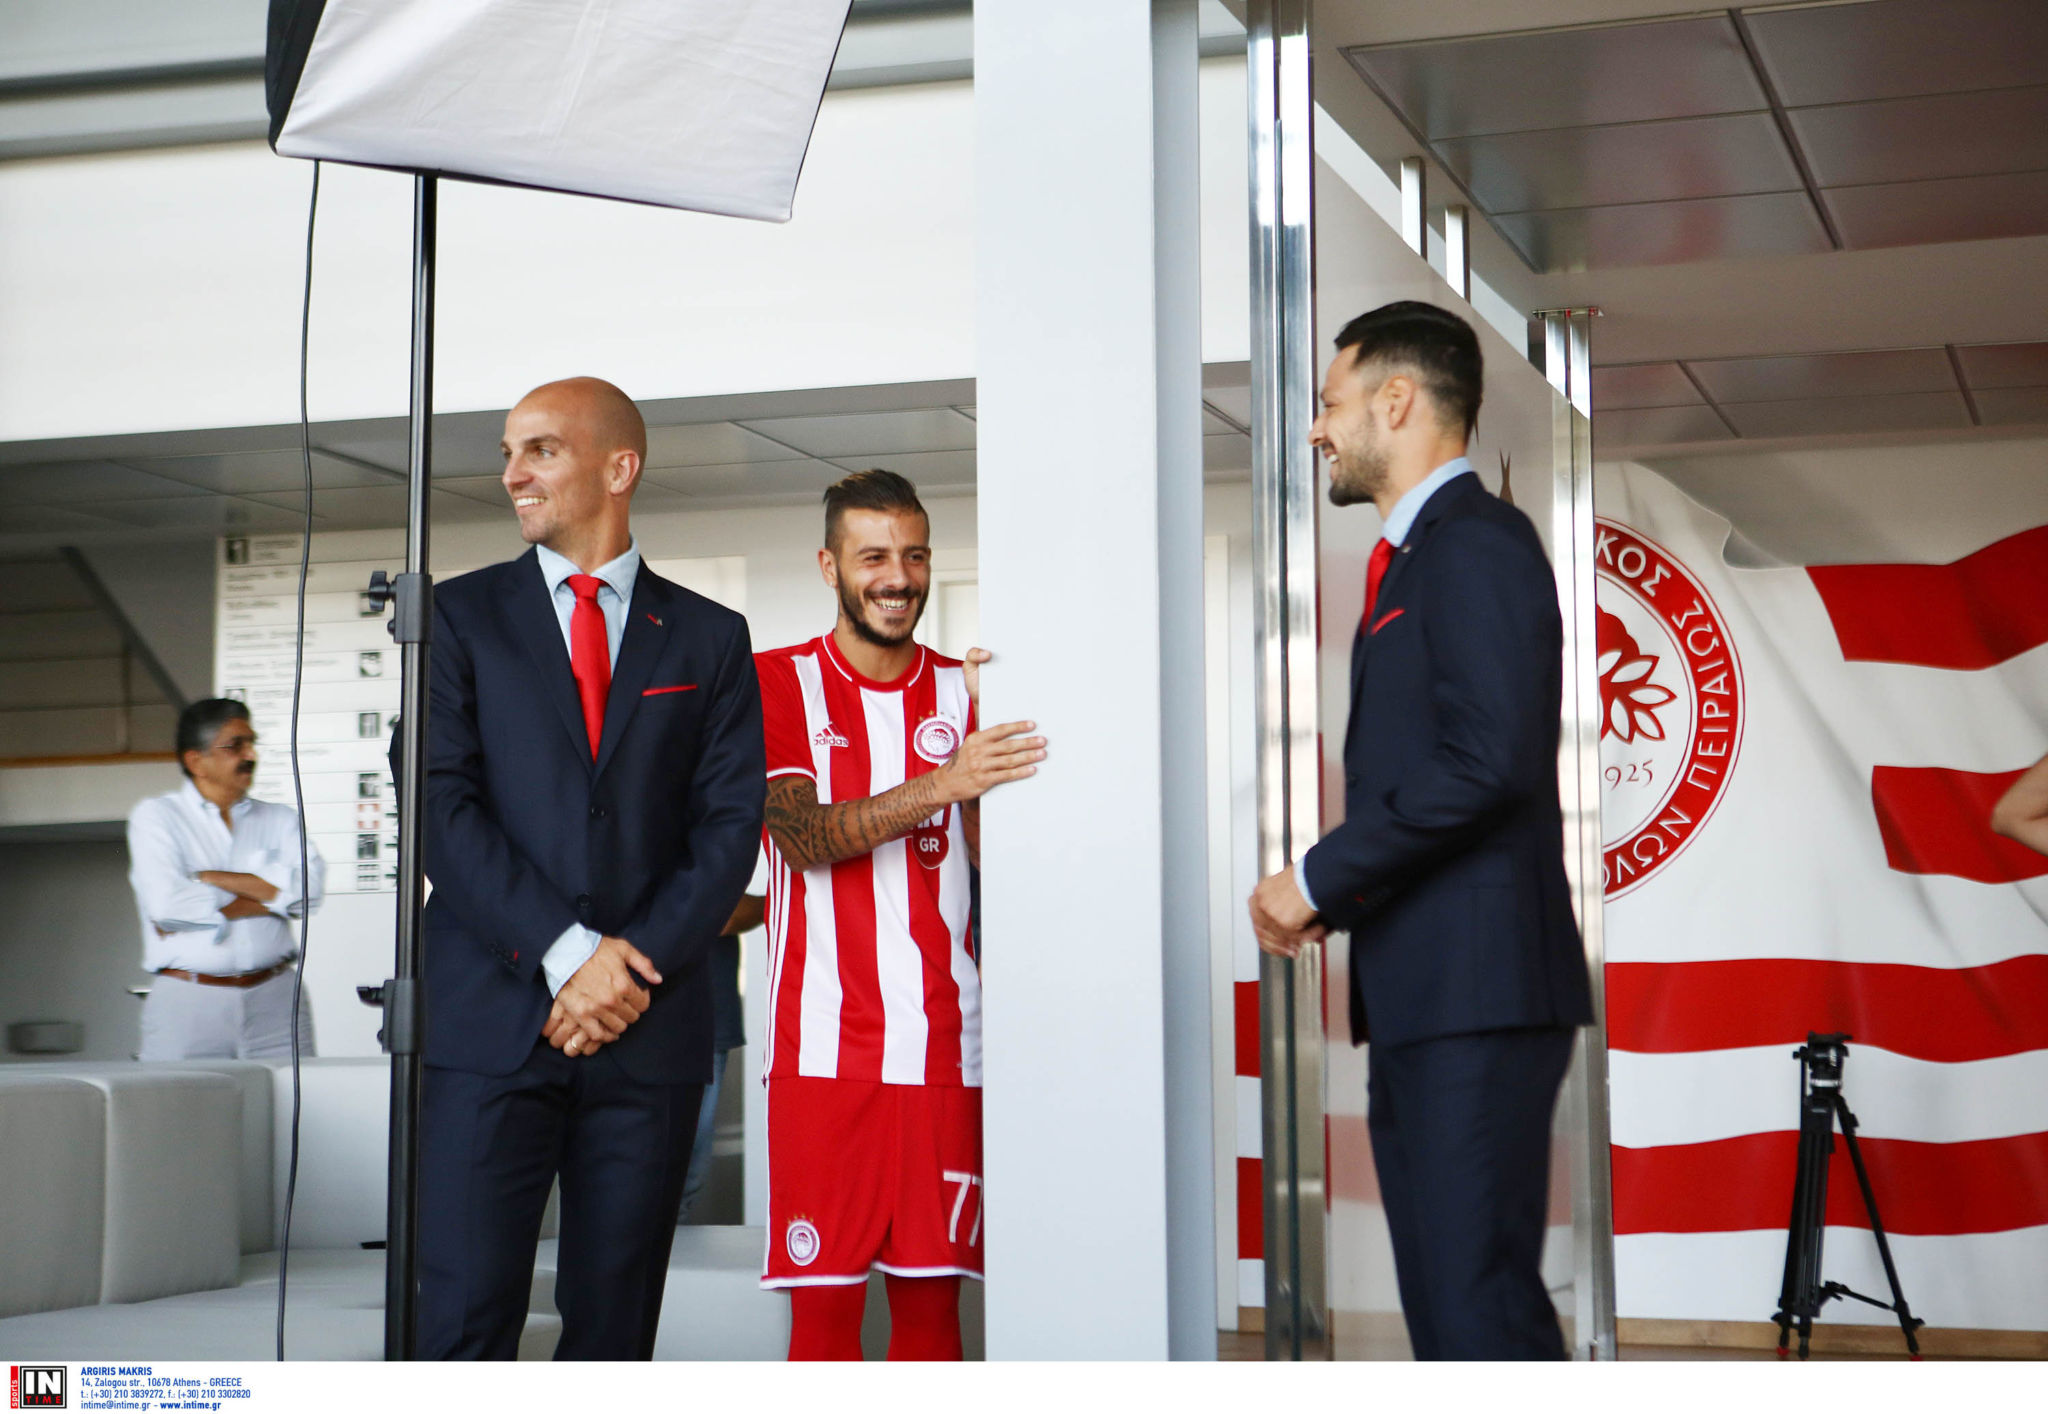 OLYMPIACOS FC players get dressed and photographed in their REPLAY suits